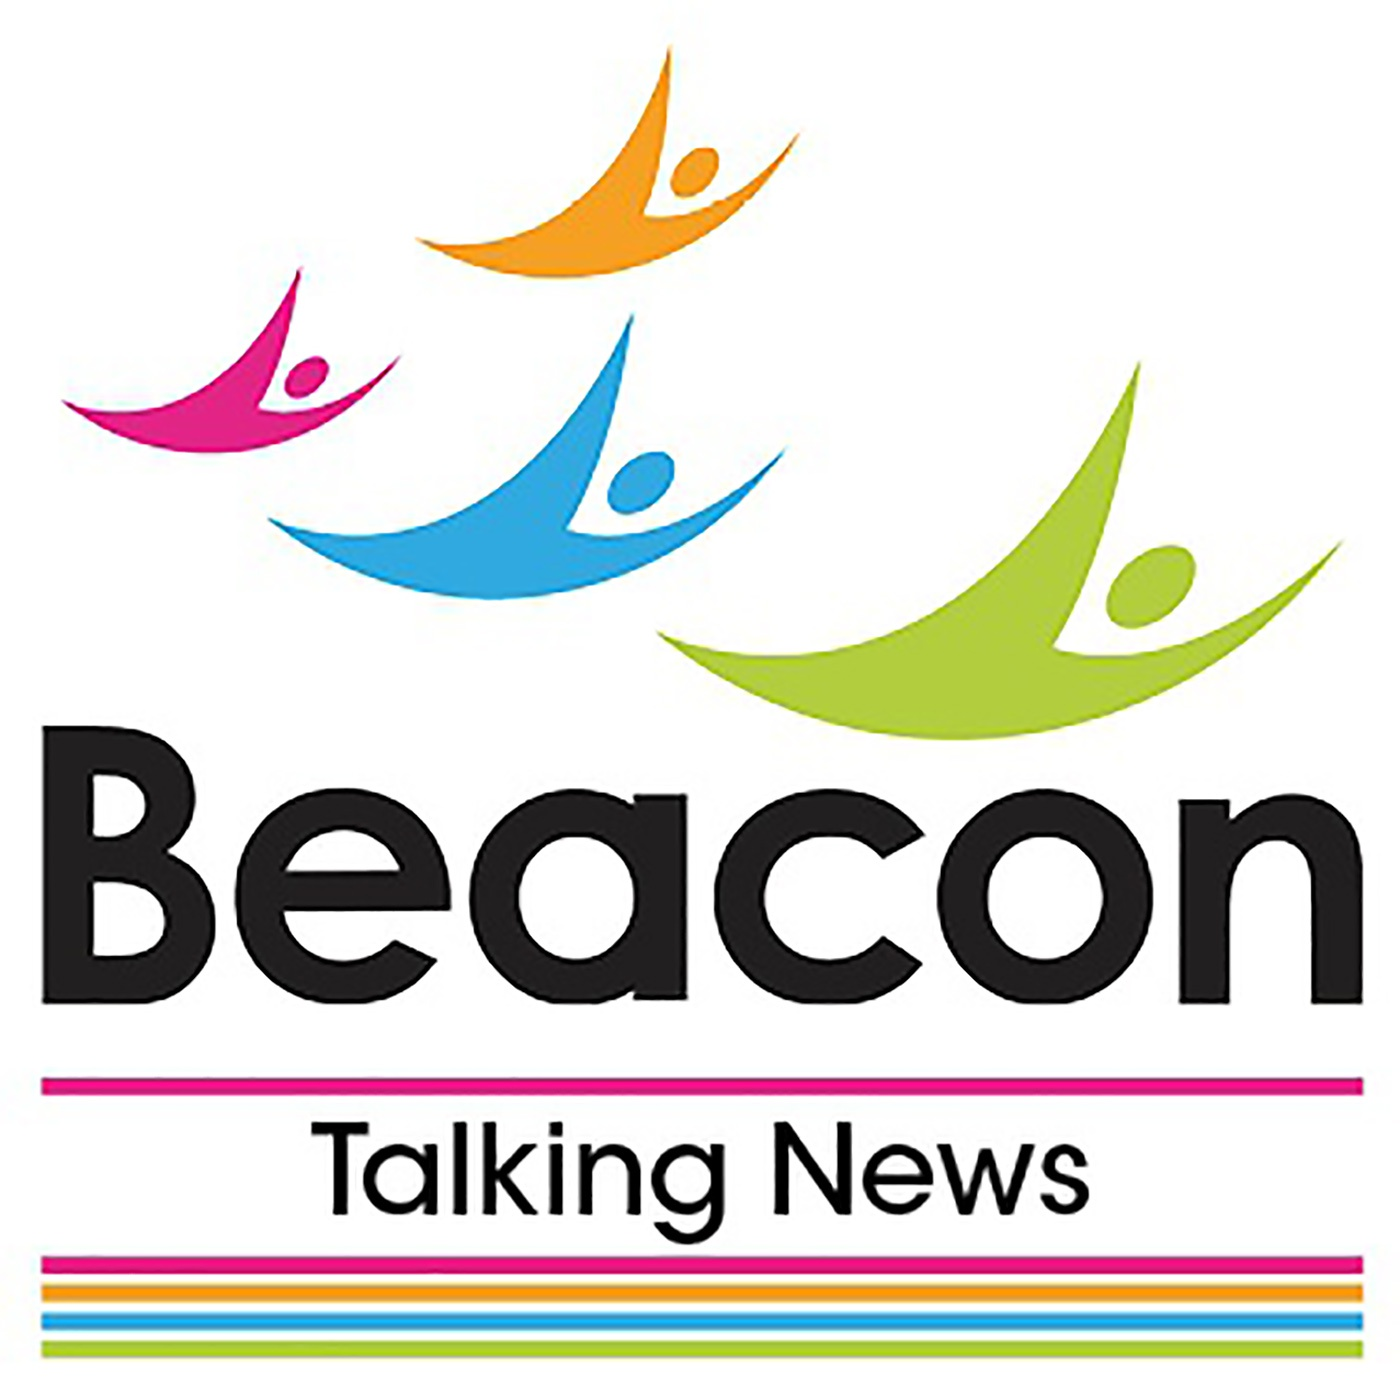 Beacon Talking News